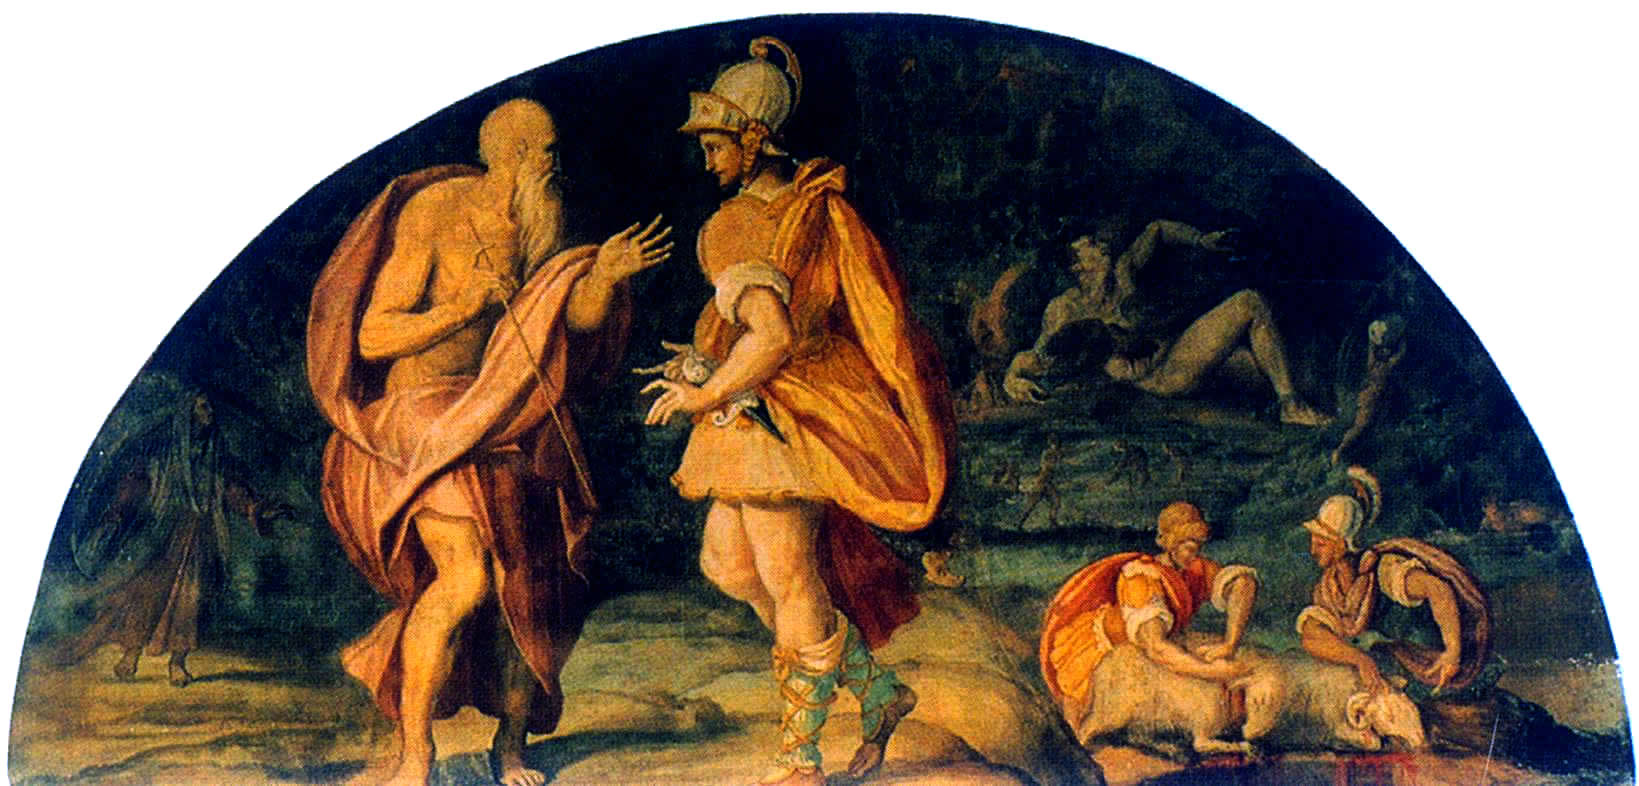 comparison of heroic characteristics between odysseus and oedipus Start studying english 9 final review learn vocabulary, terms, and more with flashcards, games, and other study tools.